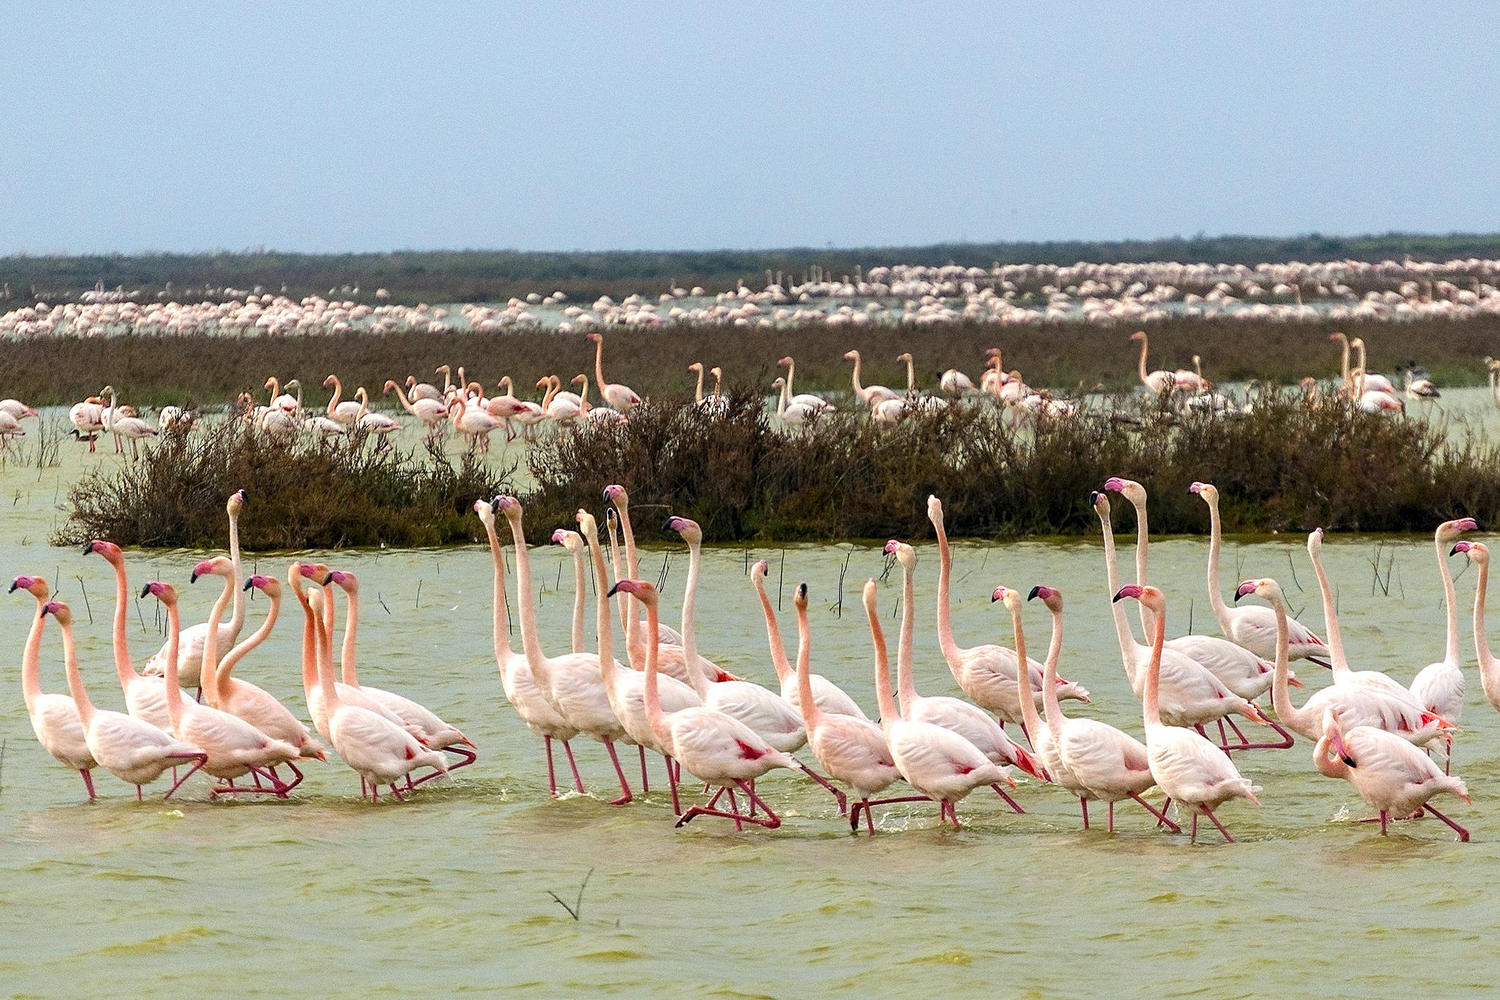 Thousands of flamingos gather in the marshlands of Doñana National Park